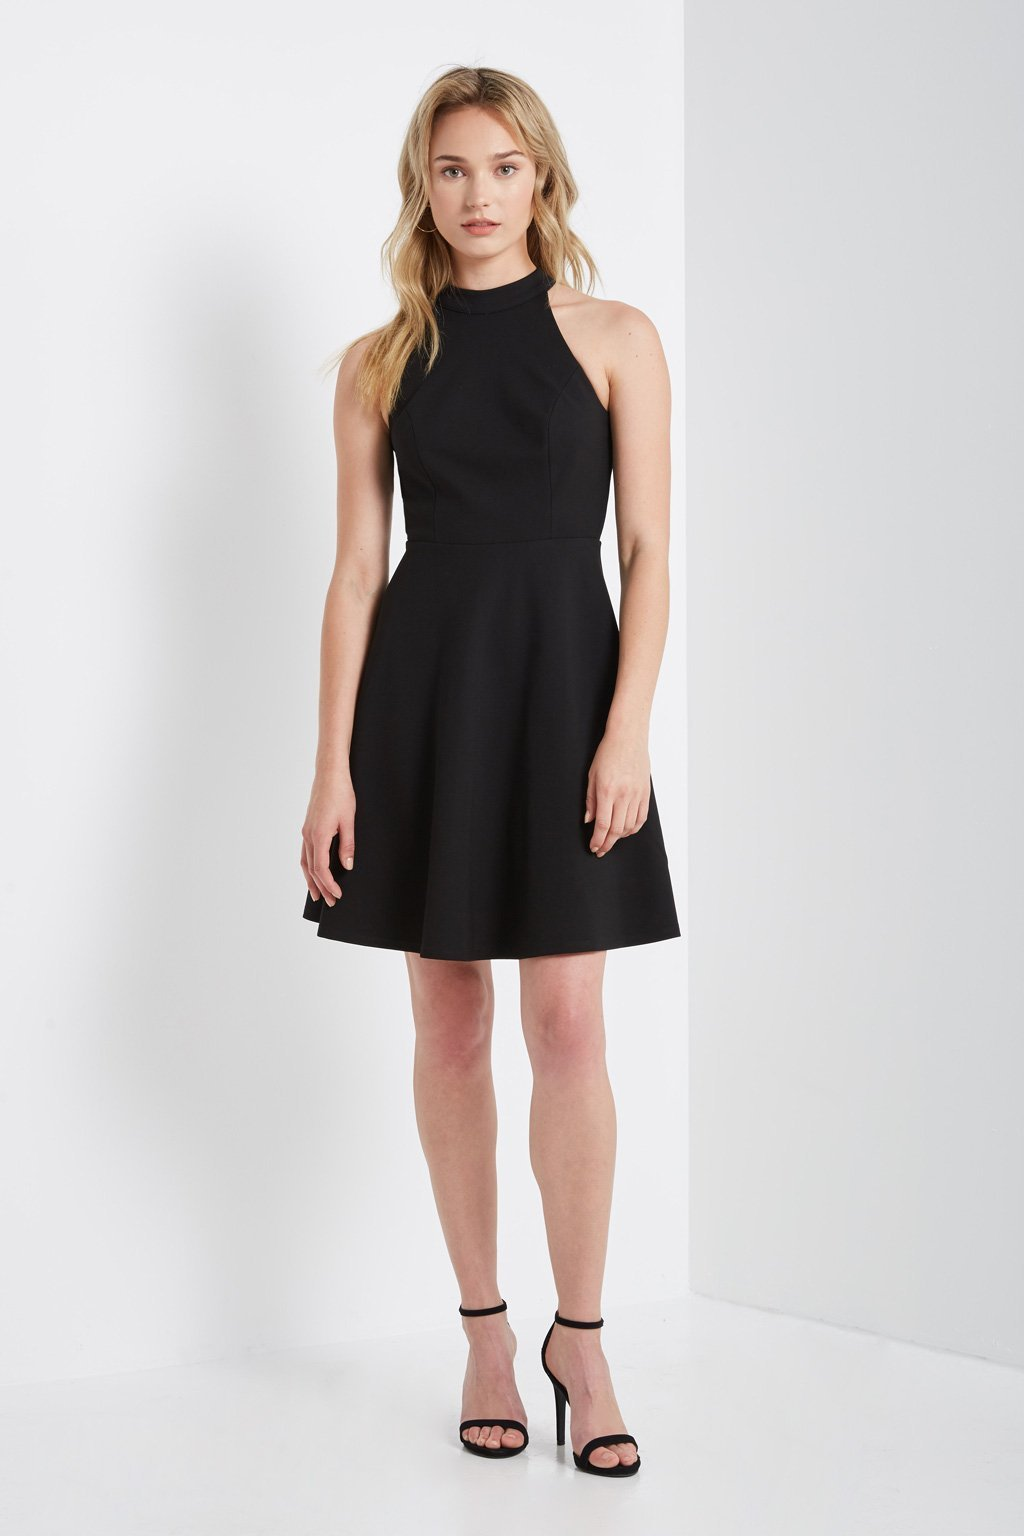 Poshsquare Dress Meek Halter Neck Fit and Flare Dress